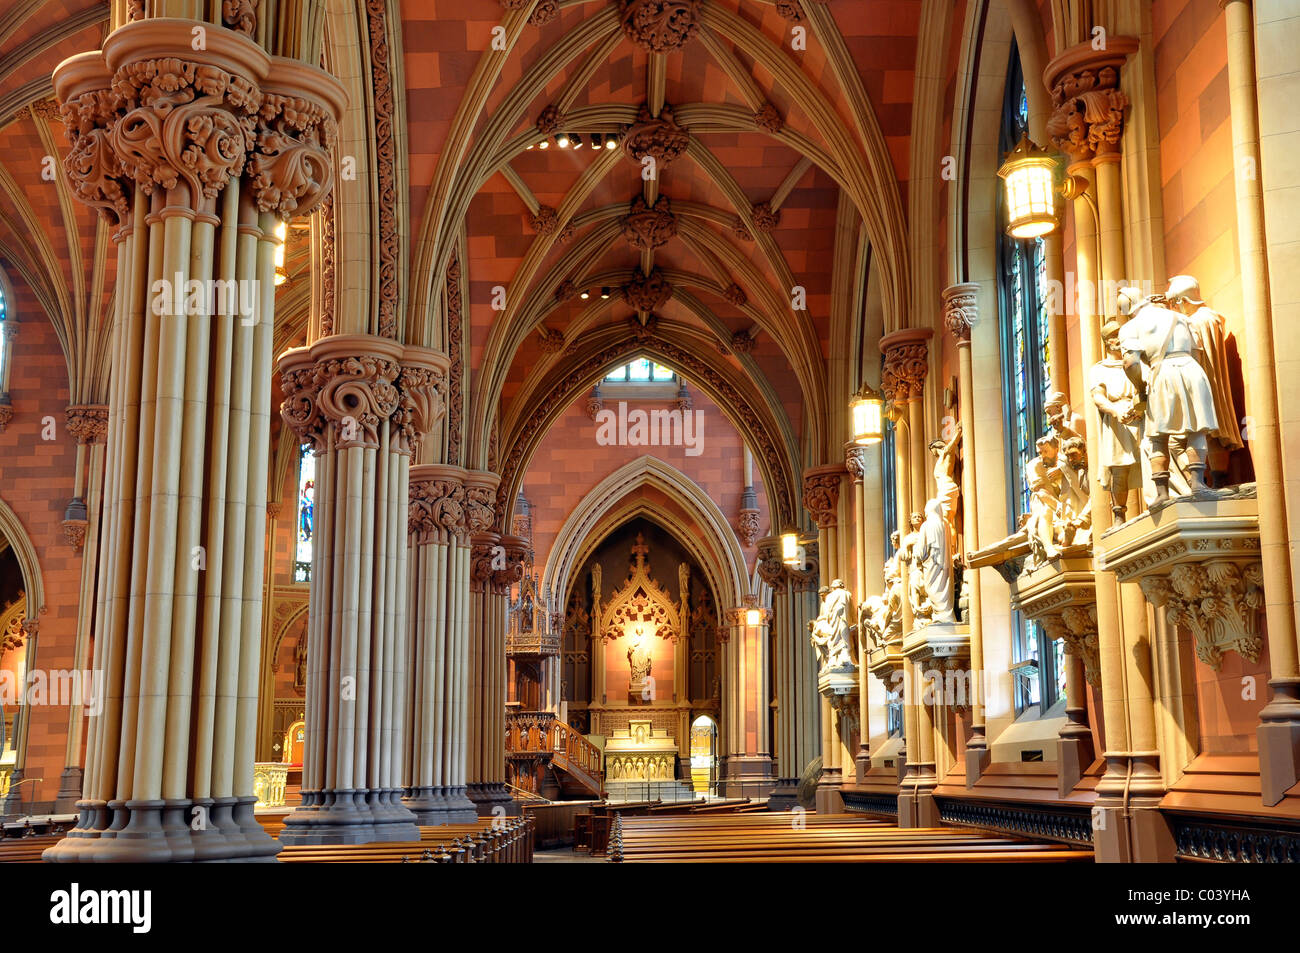 the interior design of cathedral of the immaculate conception